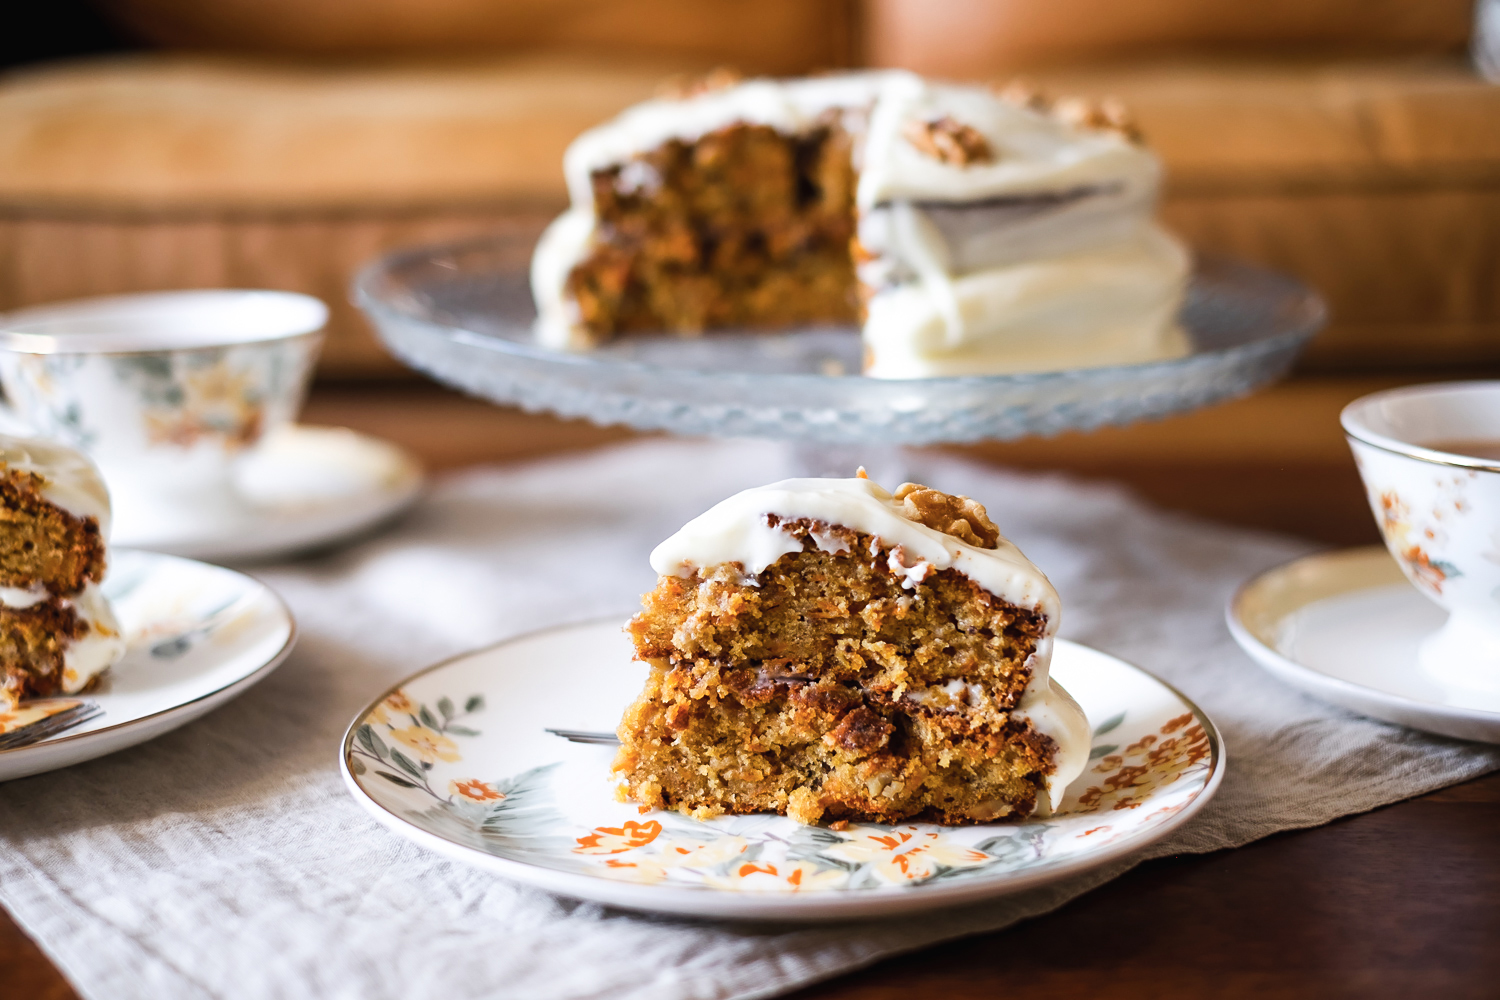 Carrot-Cake-Laura-Ashley-Florentine-7